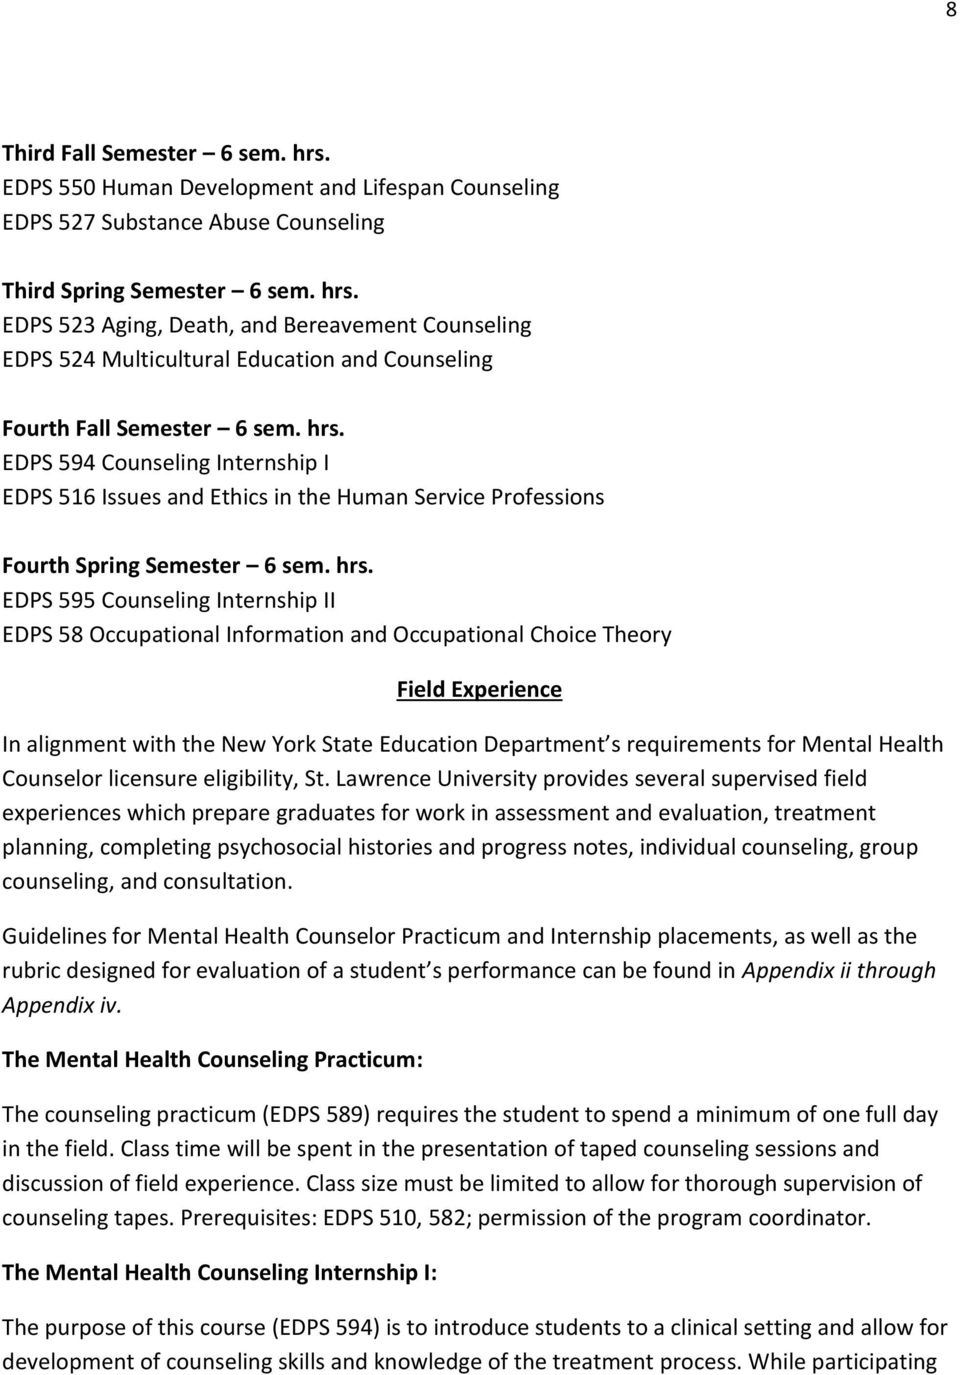 EDPS 595 Counseling Internship II EDPS 58 Occupational Information and Occupational Choice Theory Field Experience In alignment with the New York State Education Department s requirements for Mental